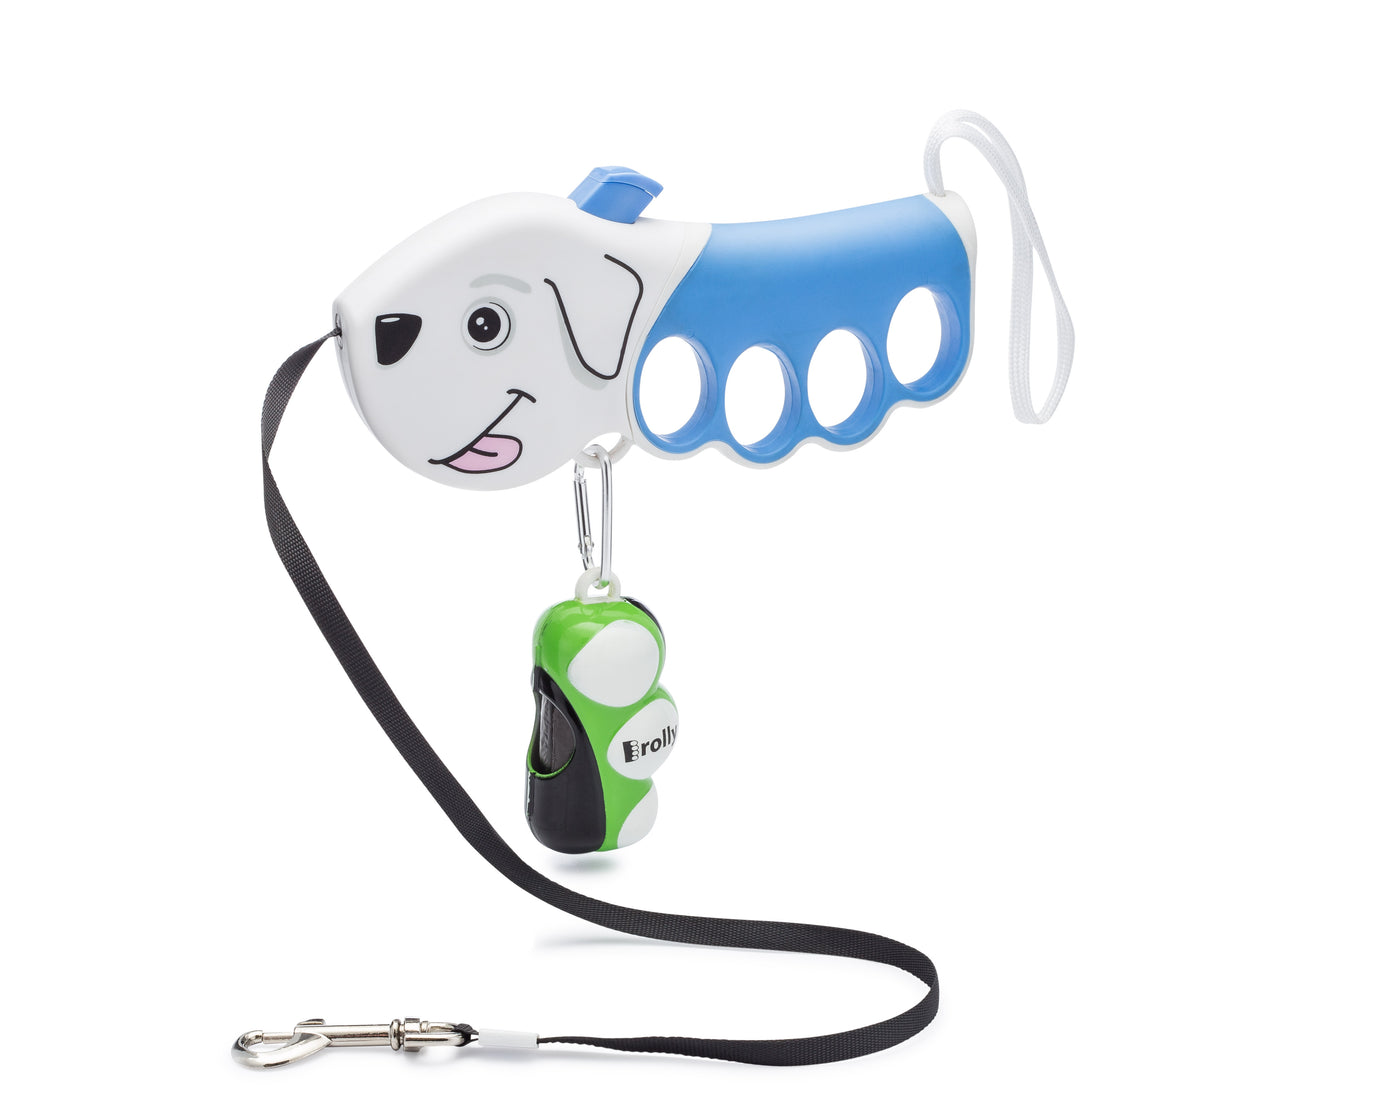 BrollyPet Retractable dog leash